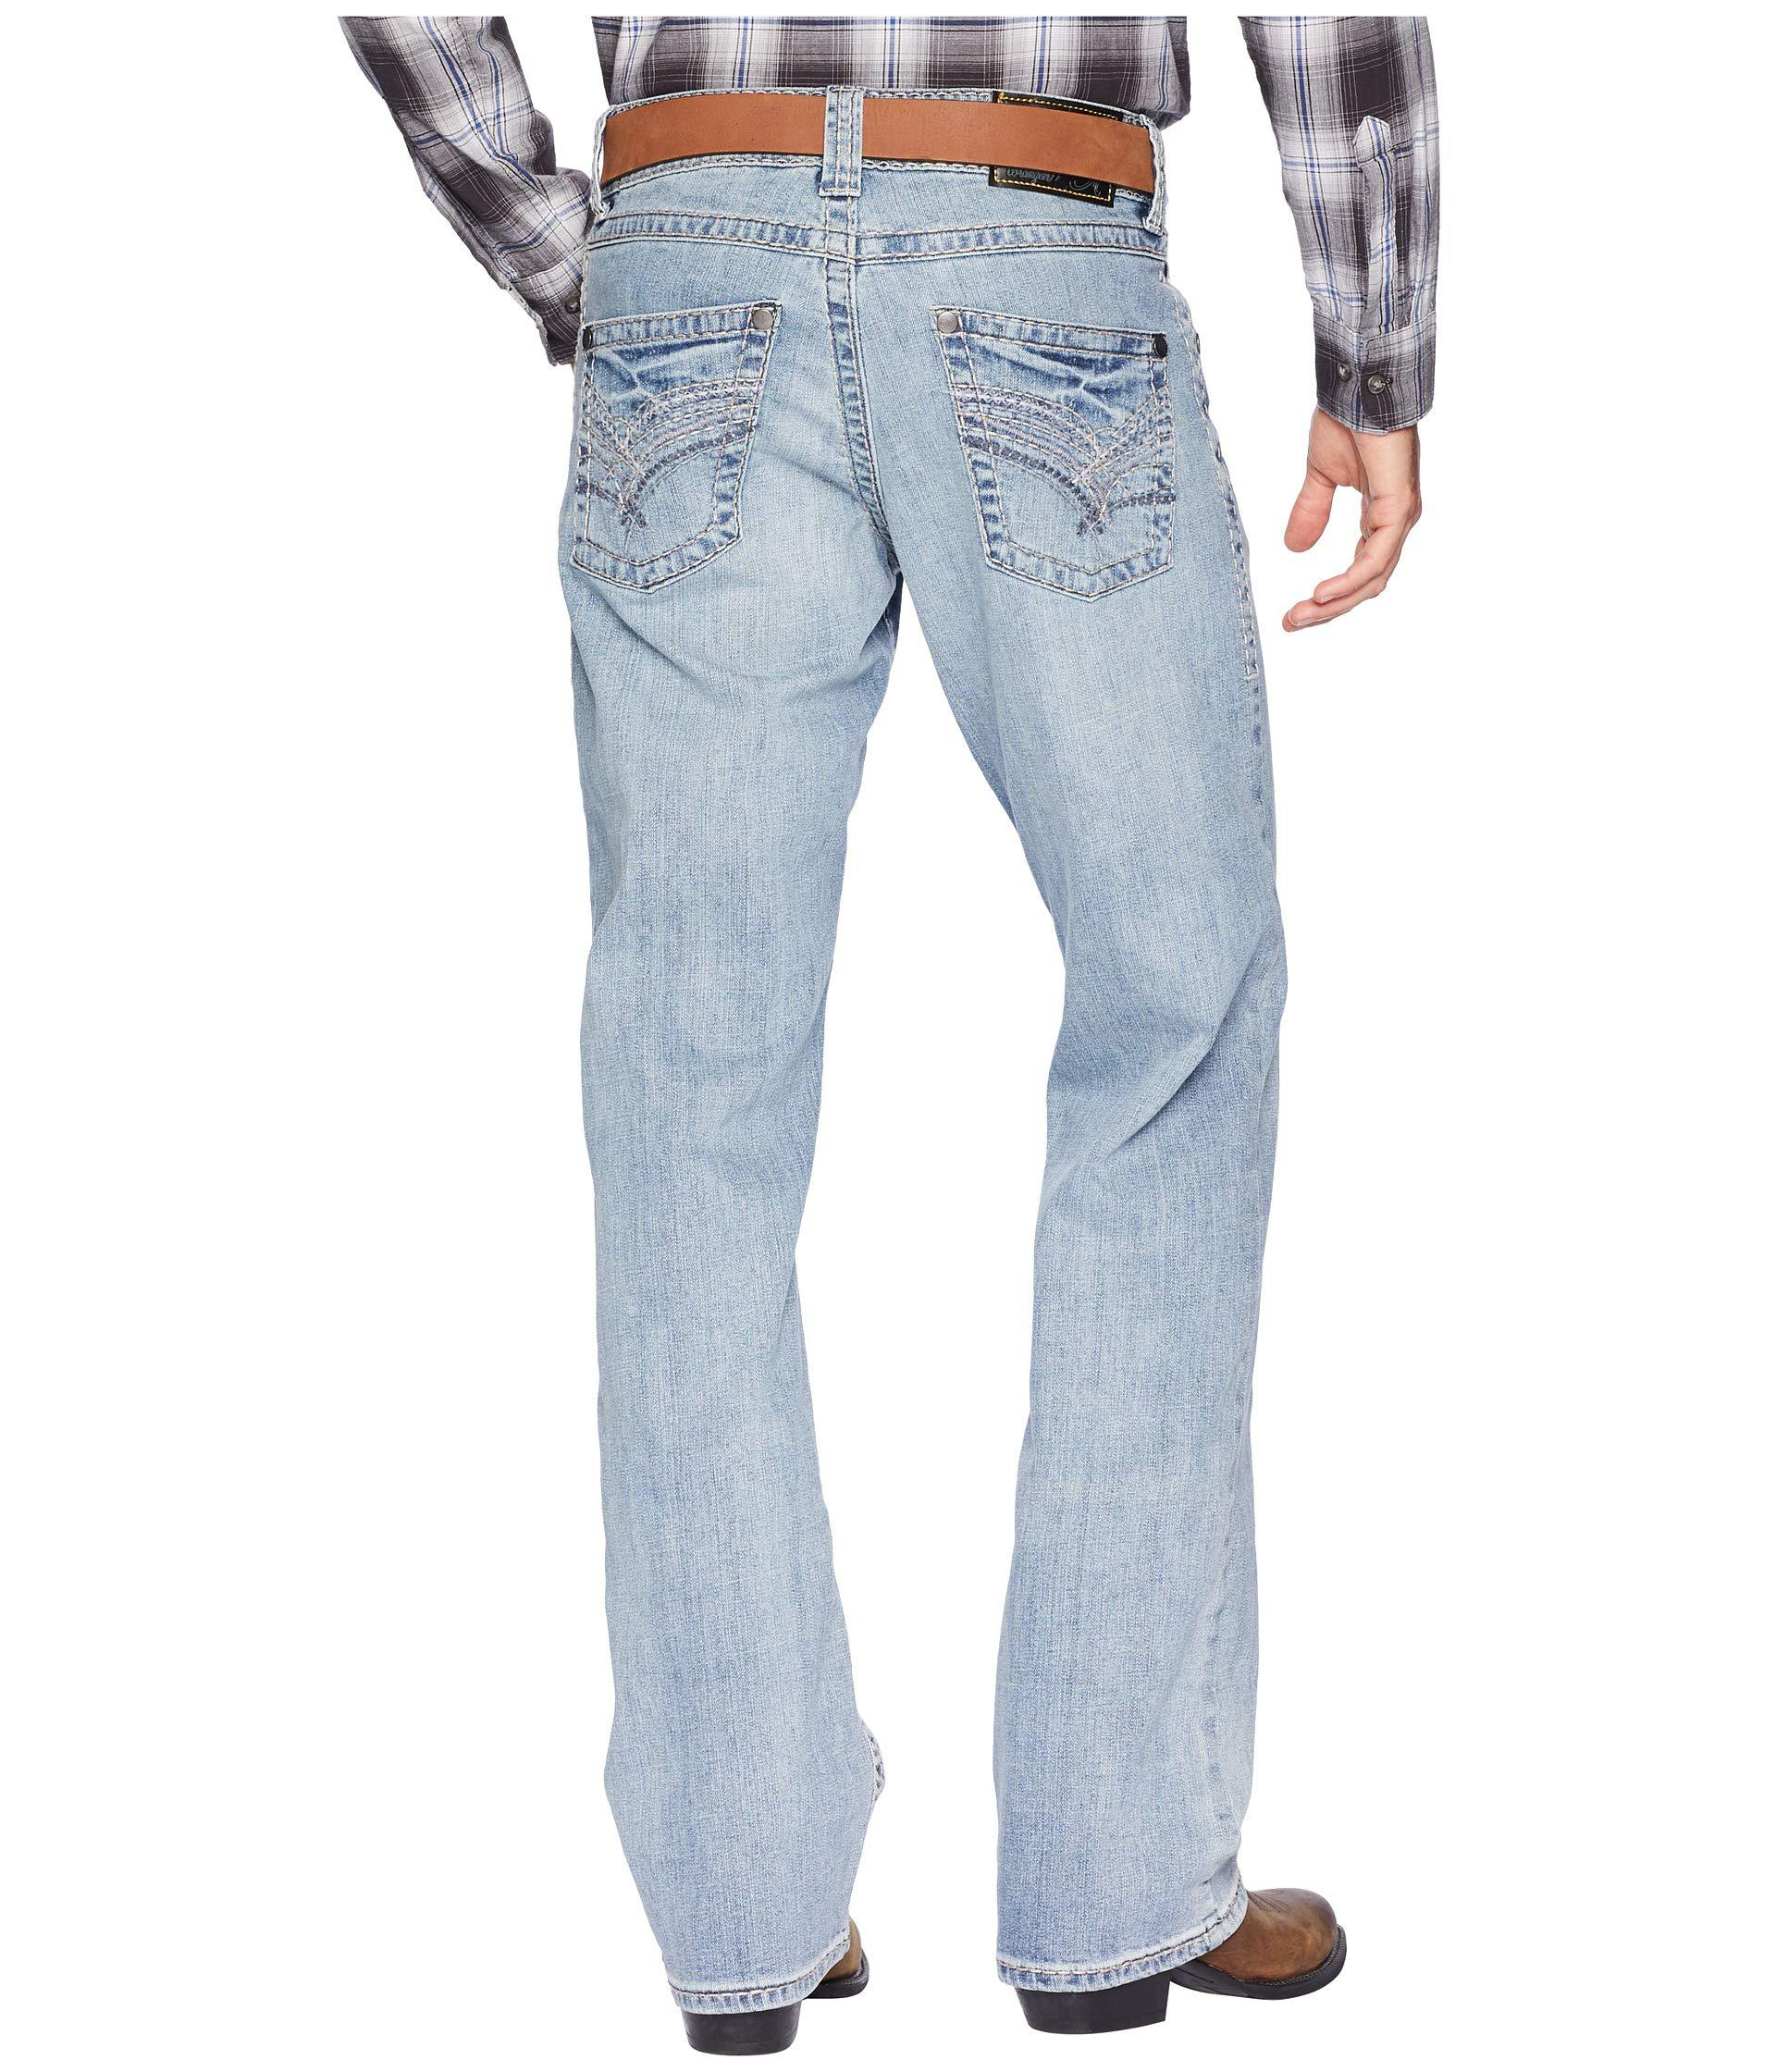 Wrangler Rock 47 >> Rock 47 Relaxed Boot Jeans Back Beat Men S Jeans